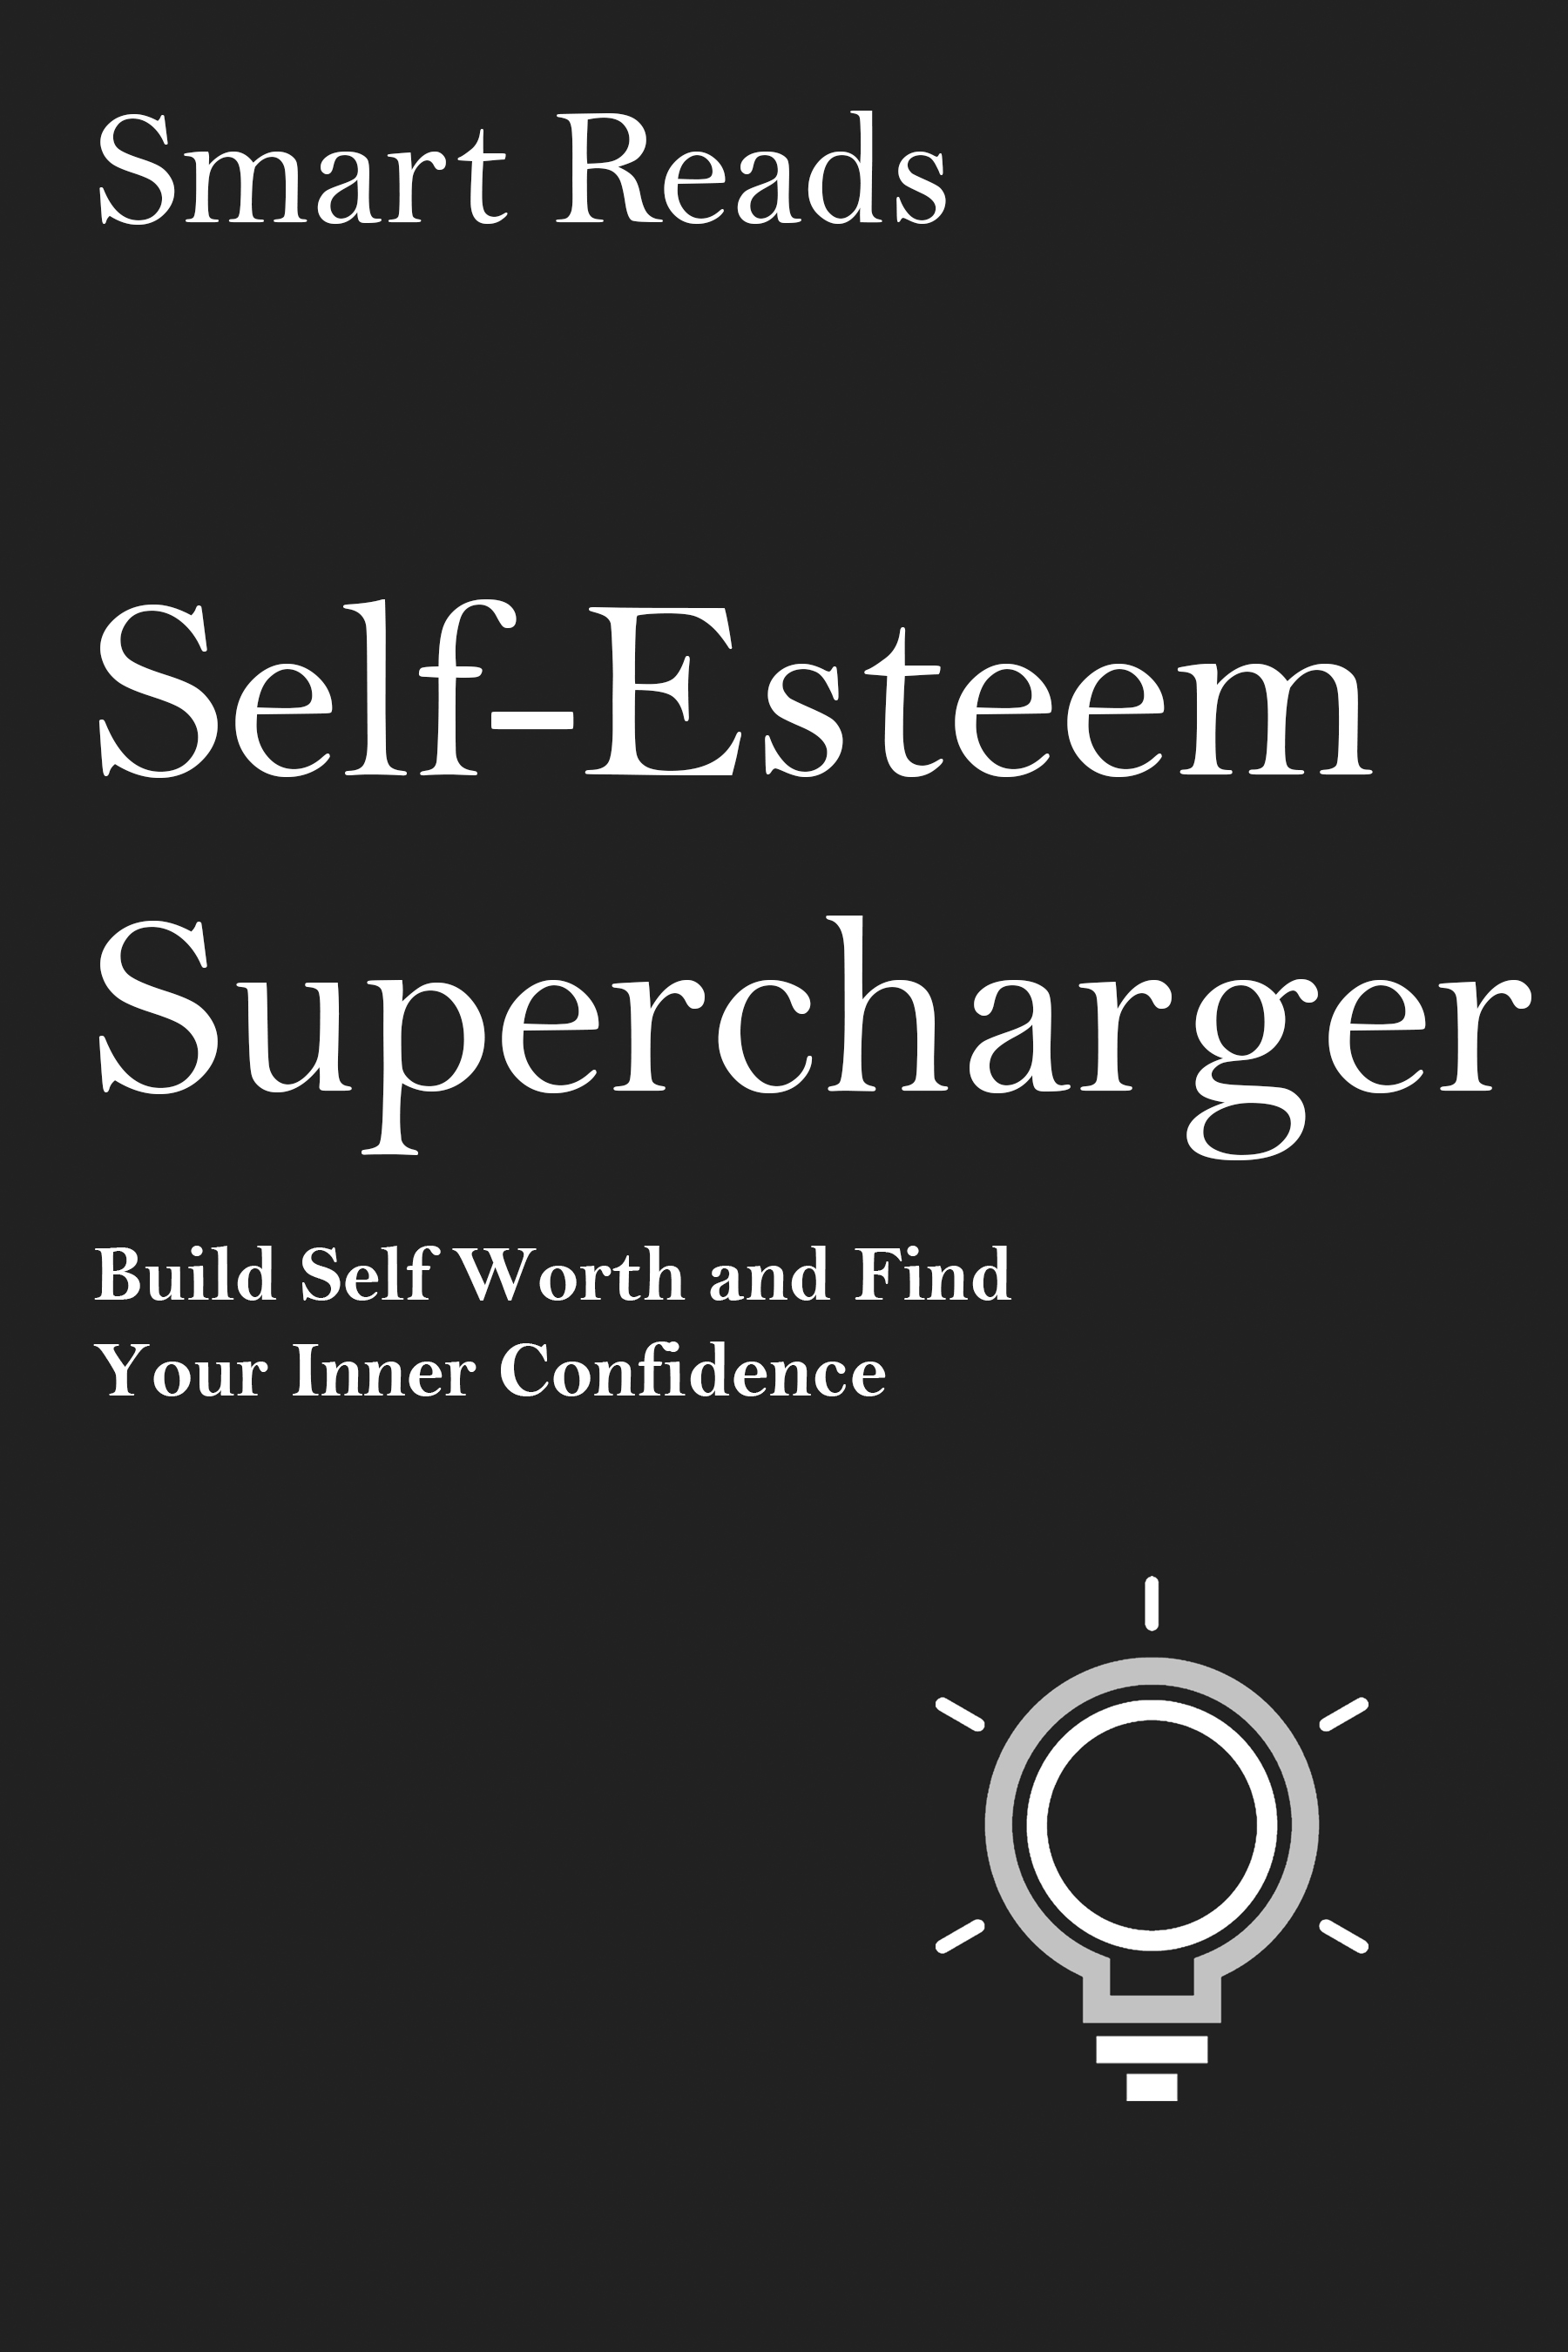 How to build inner confidence